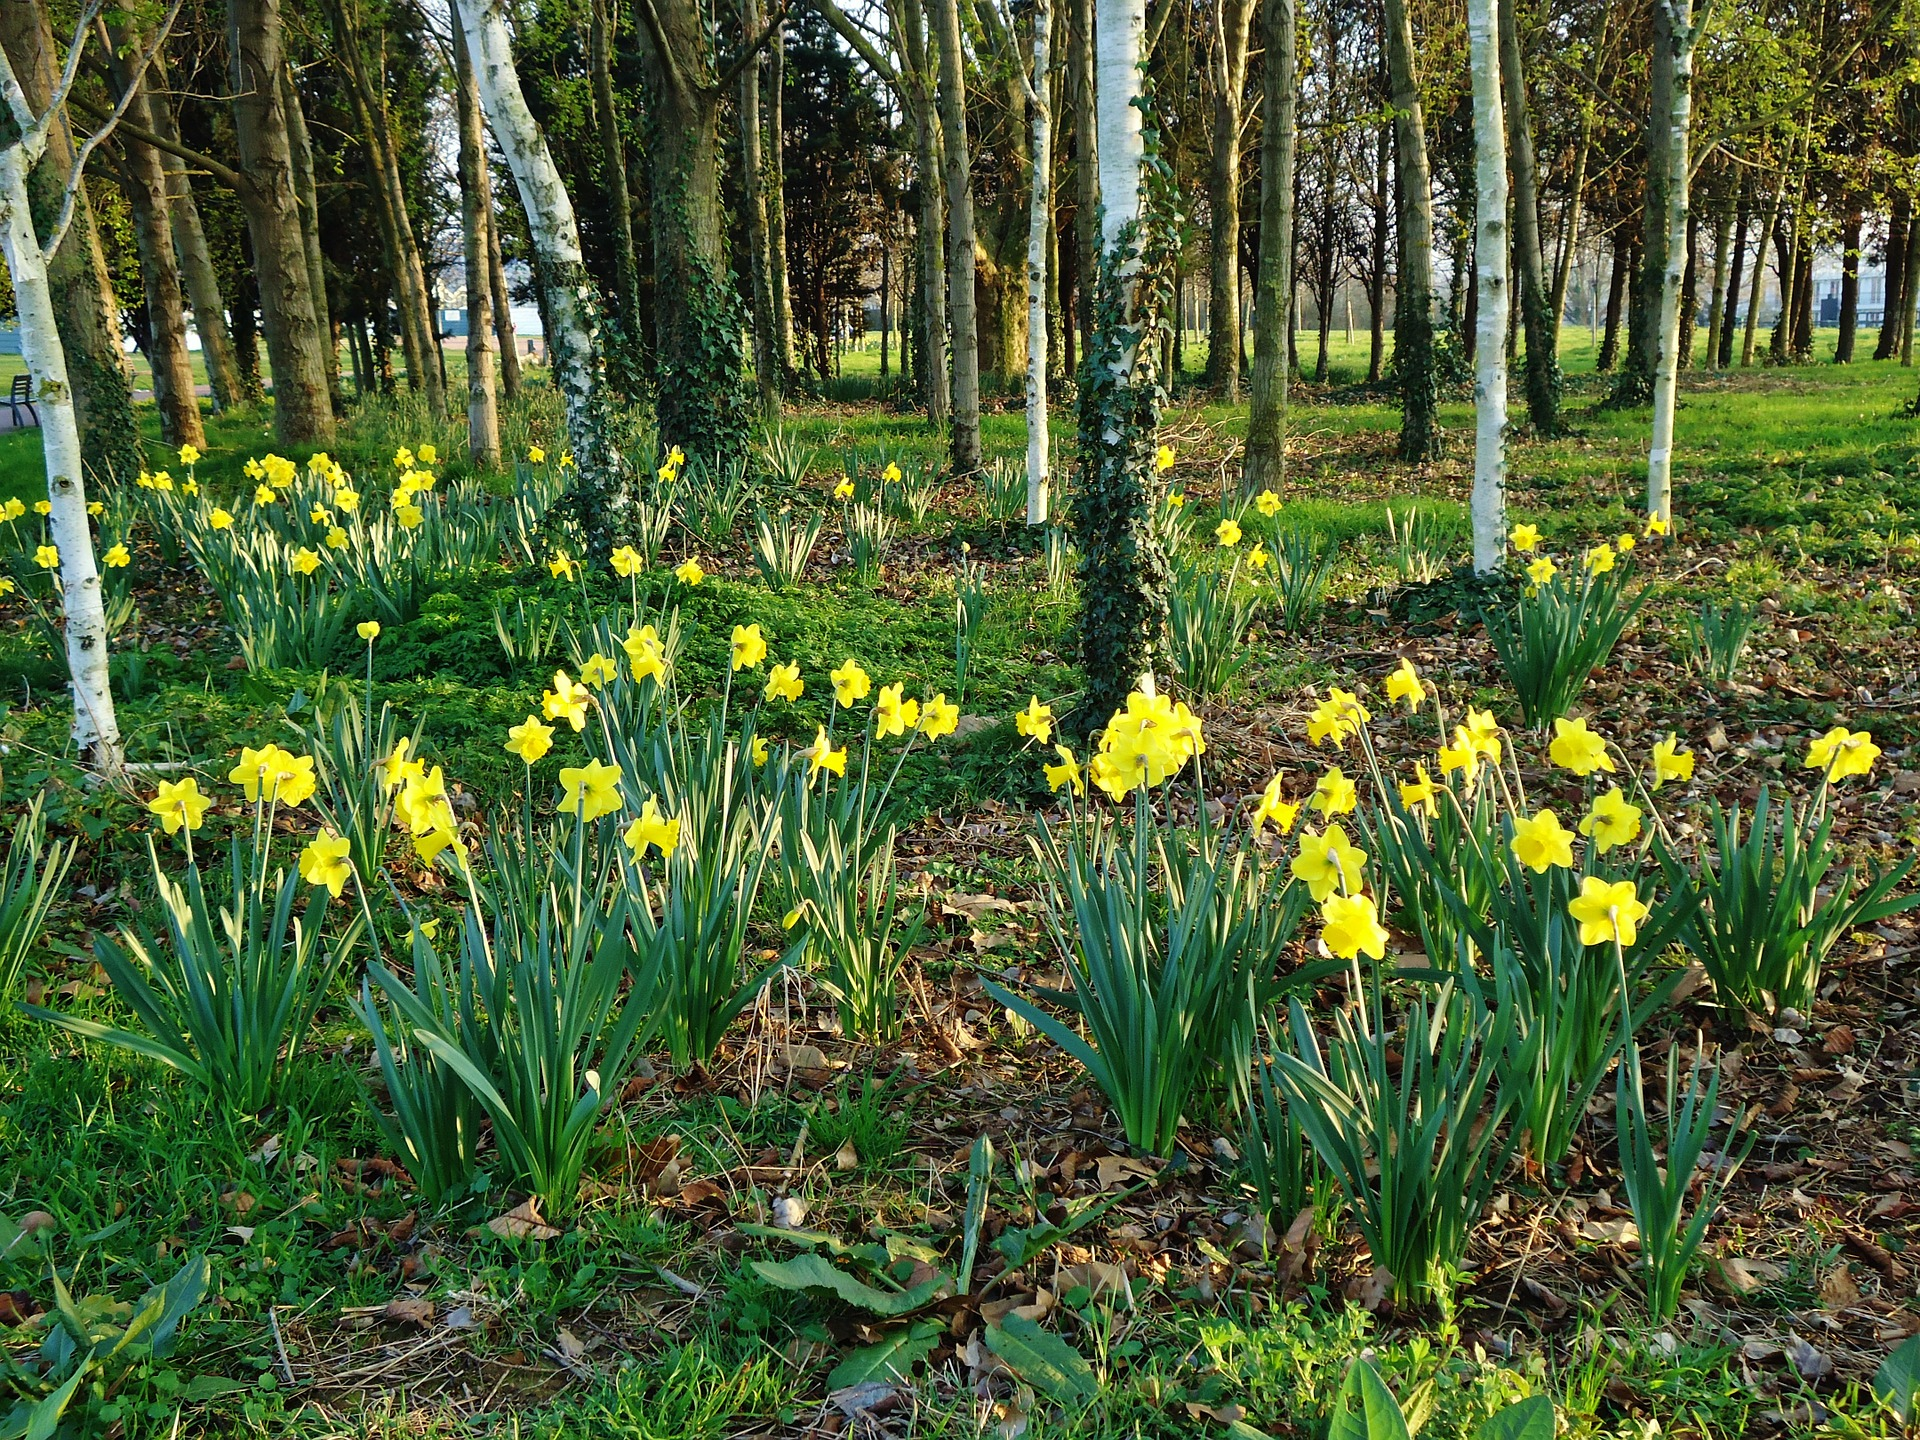 Daffodils planted under trees